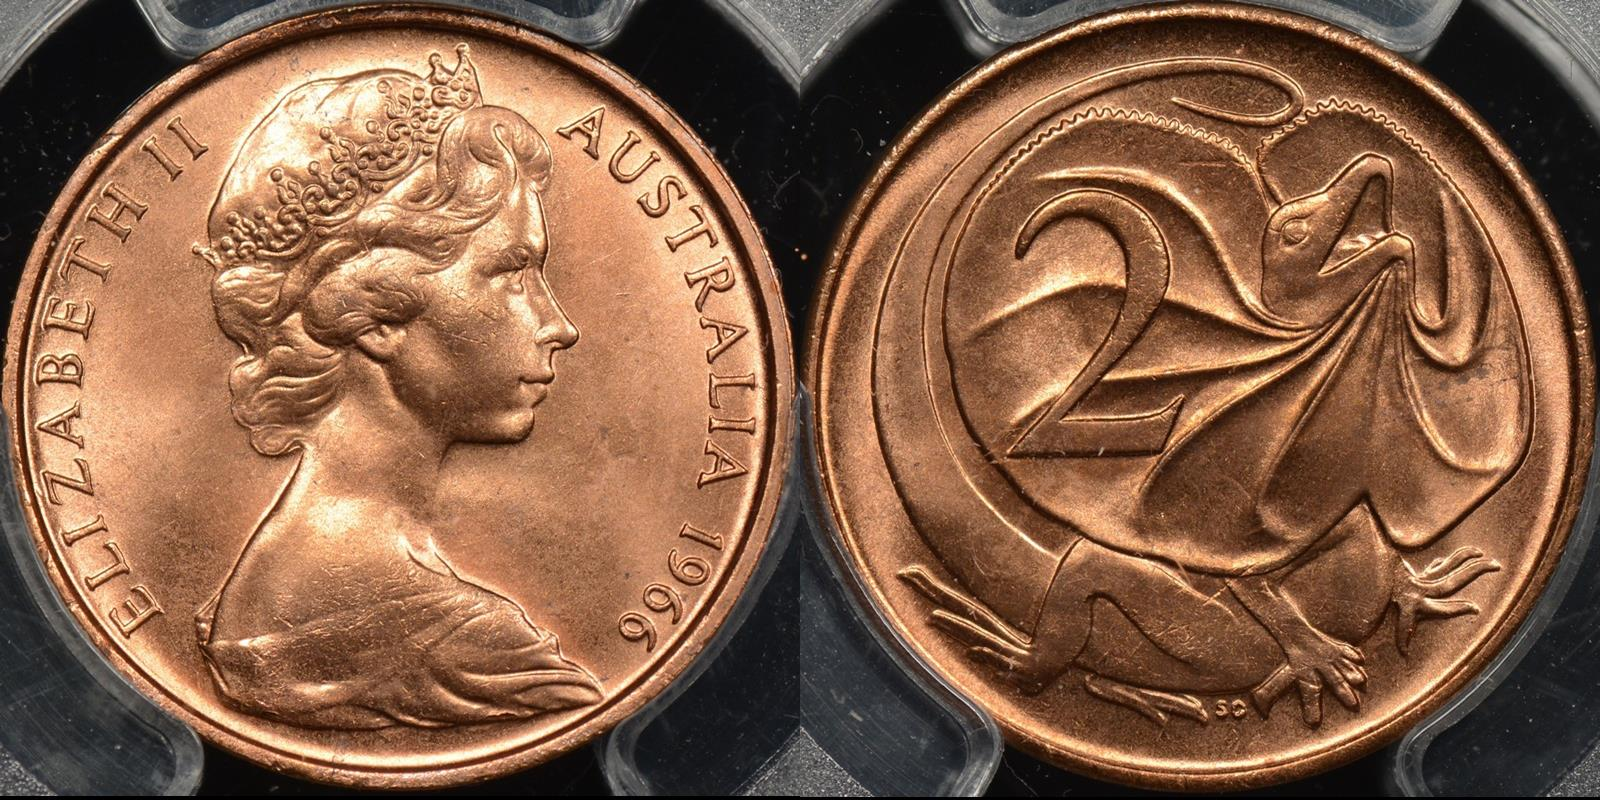 https://s3.amazonaws.com/uploads.bmxmuseum.com/user-images/251394/2-cent-piece-australia-19665e536ec500.jpg